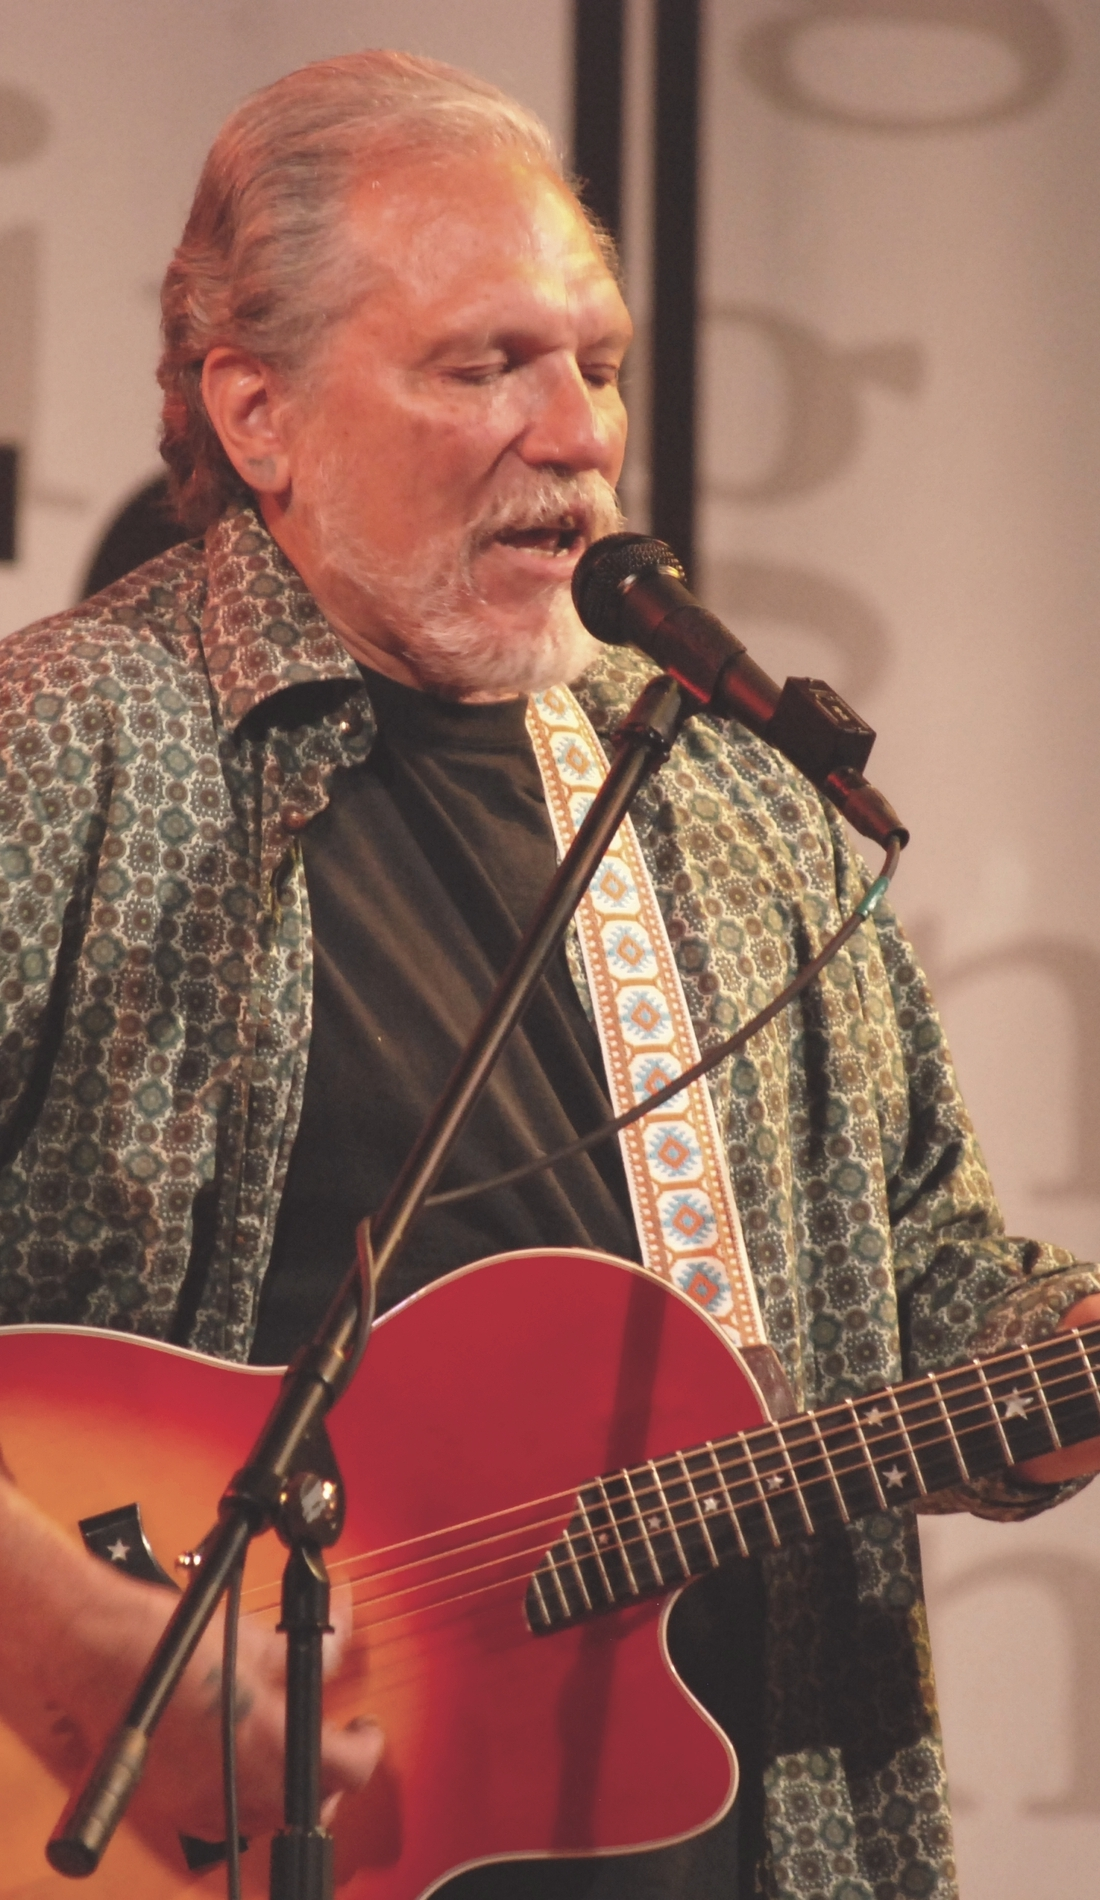 A Hot Tuna live event